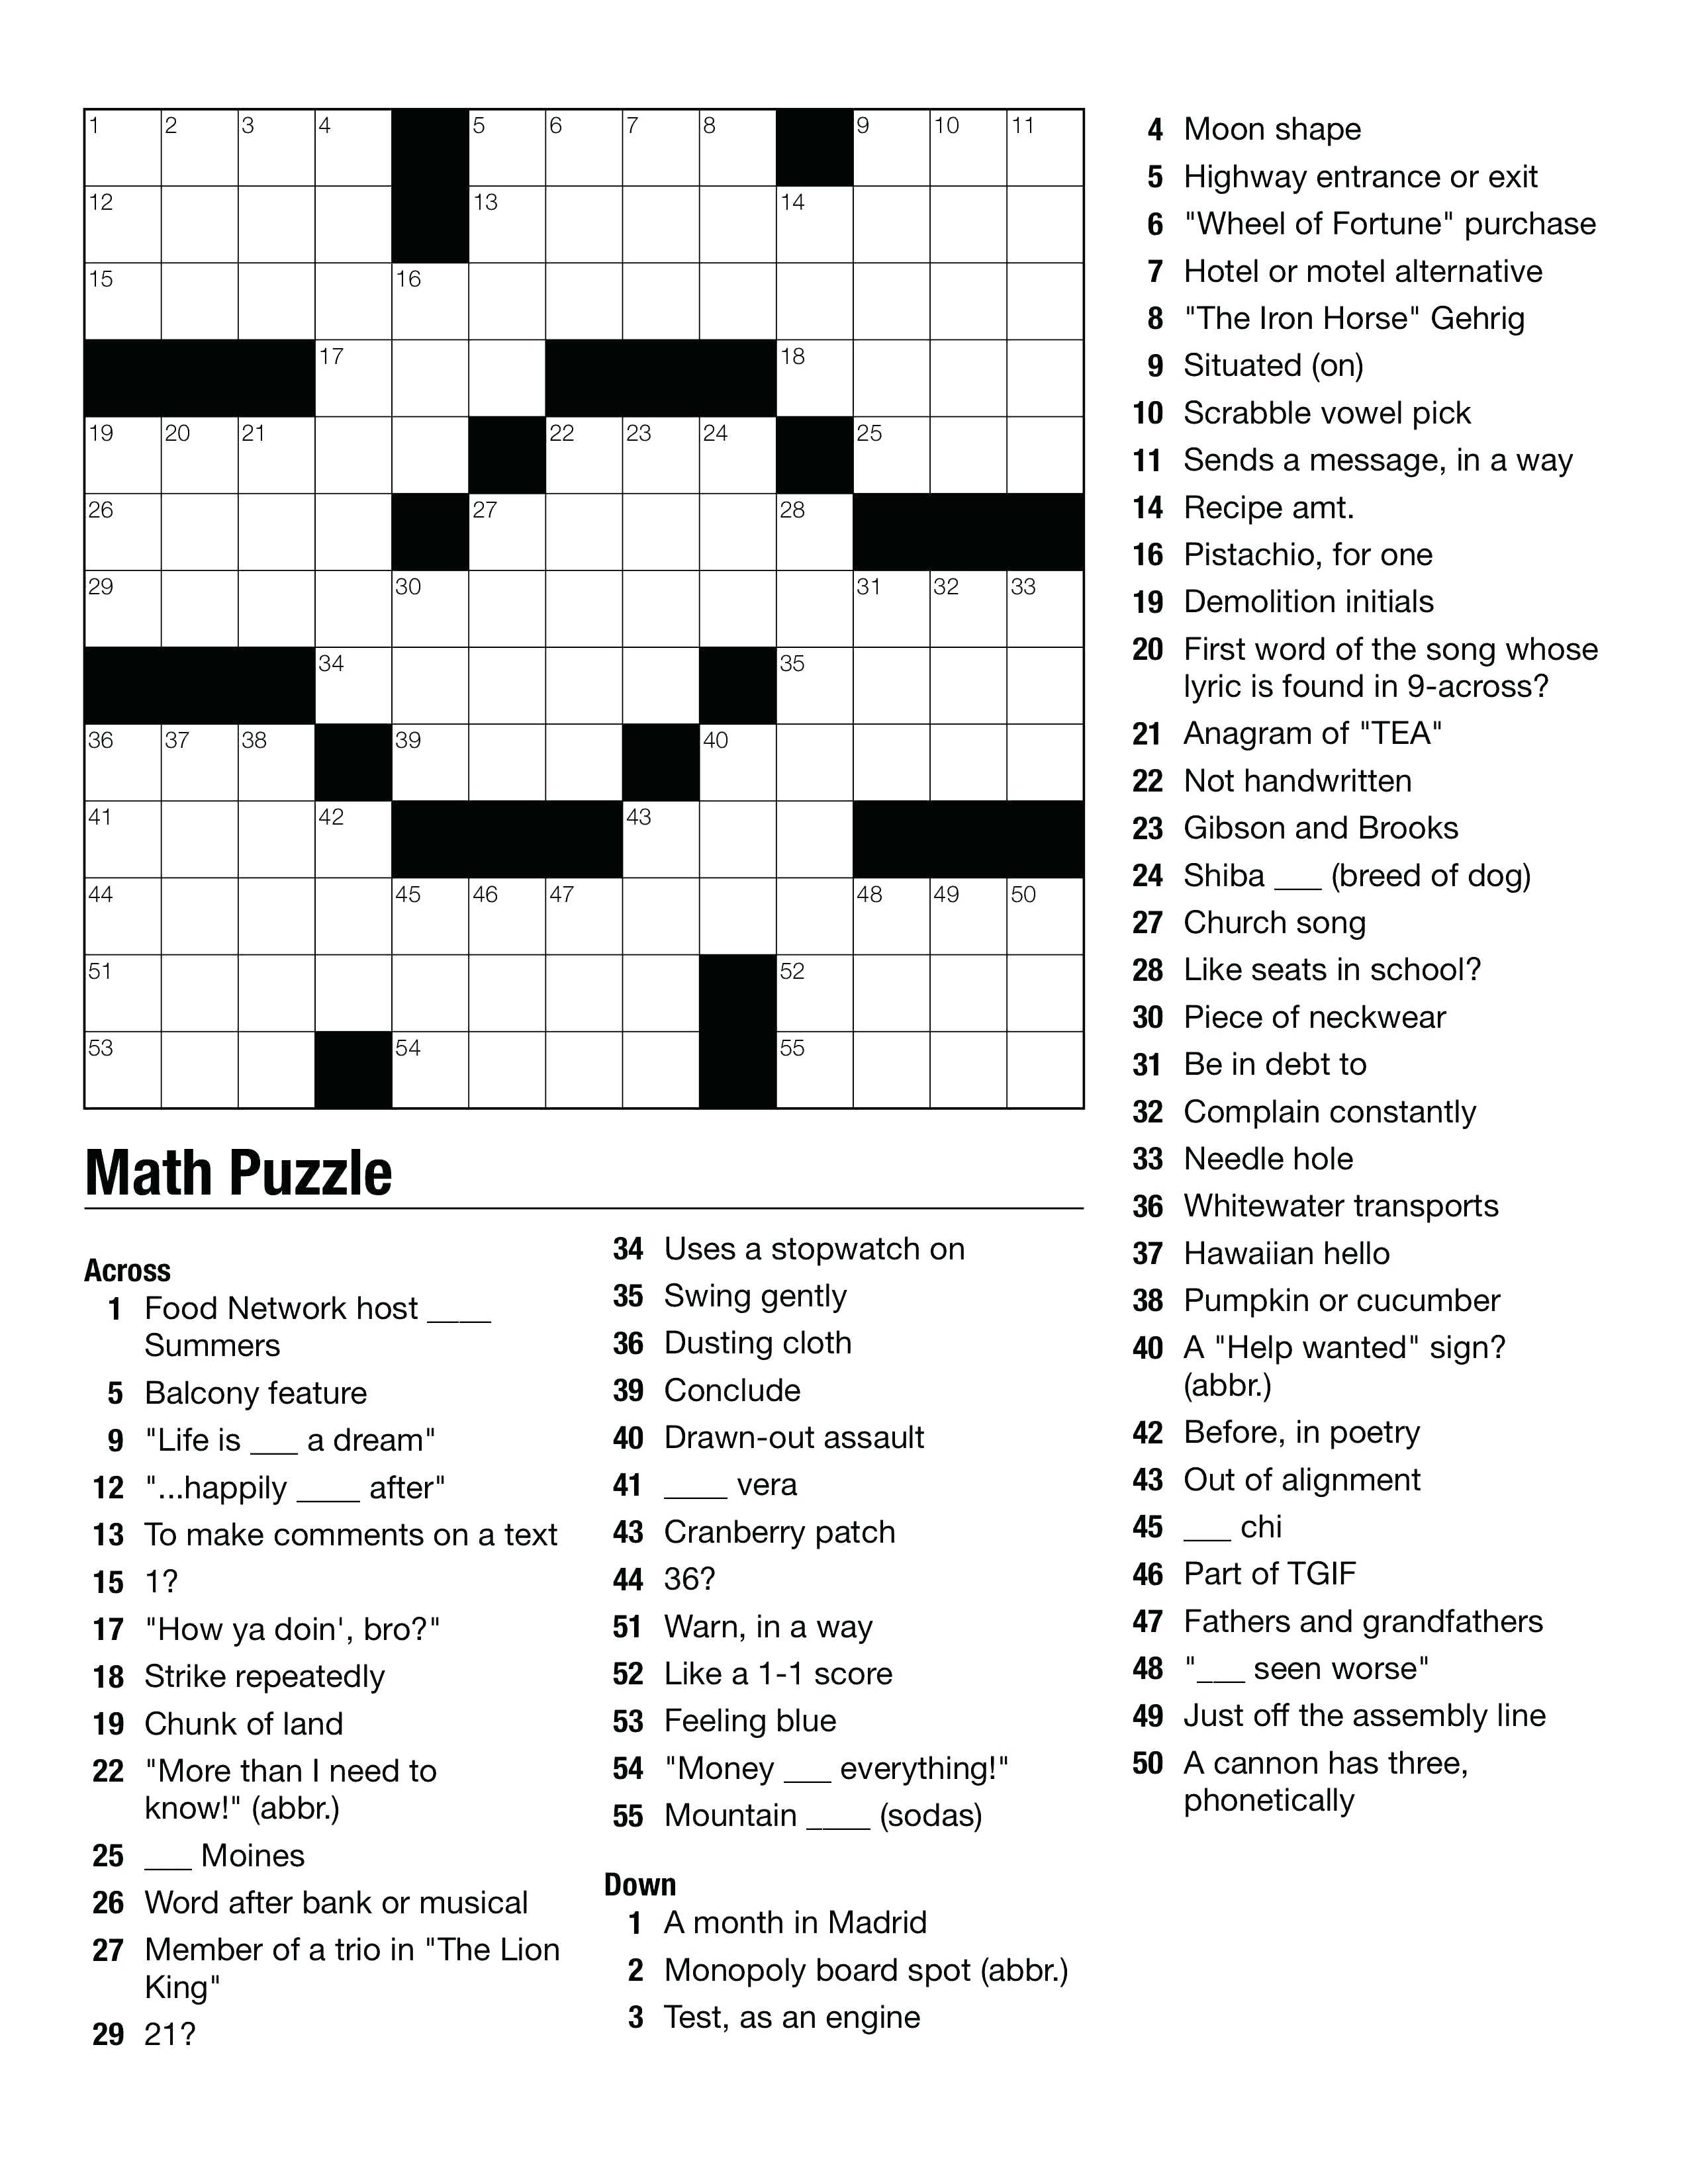 Geometry Puzzles Math Geometry Images Teaching Ideas On Crossword - Printable Puzzles High School